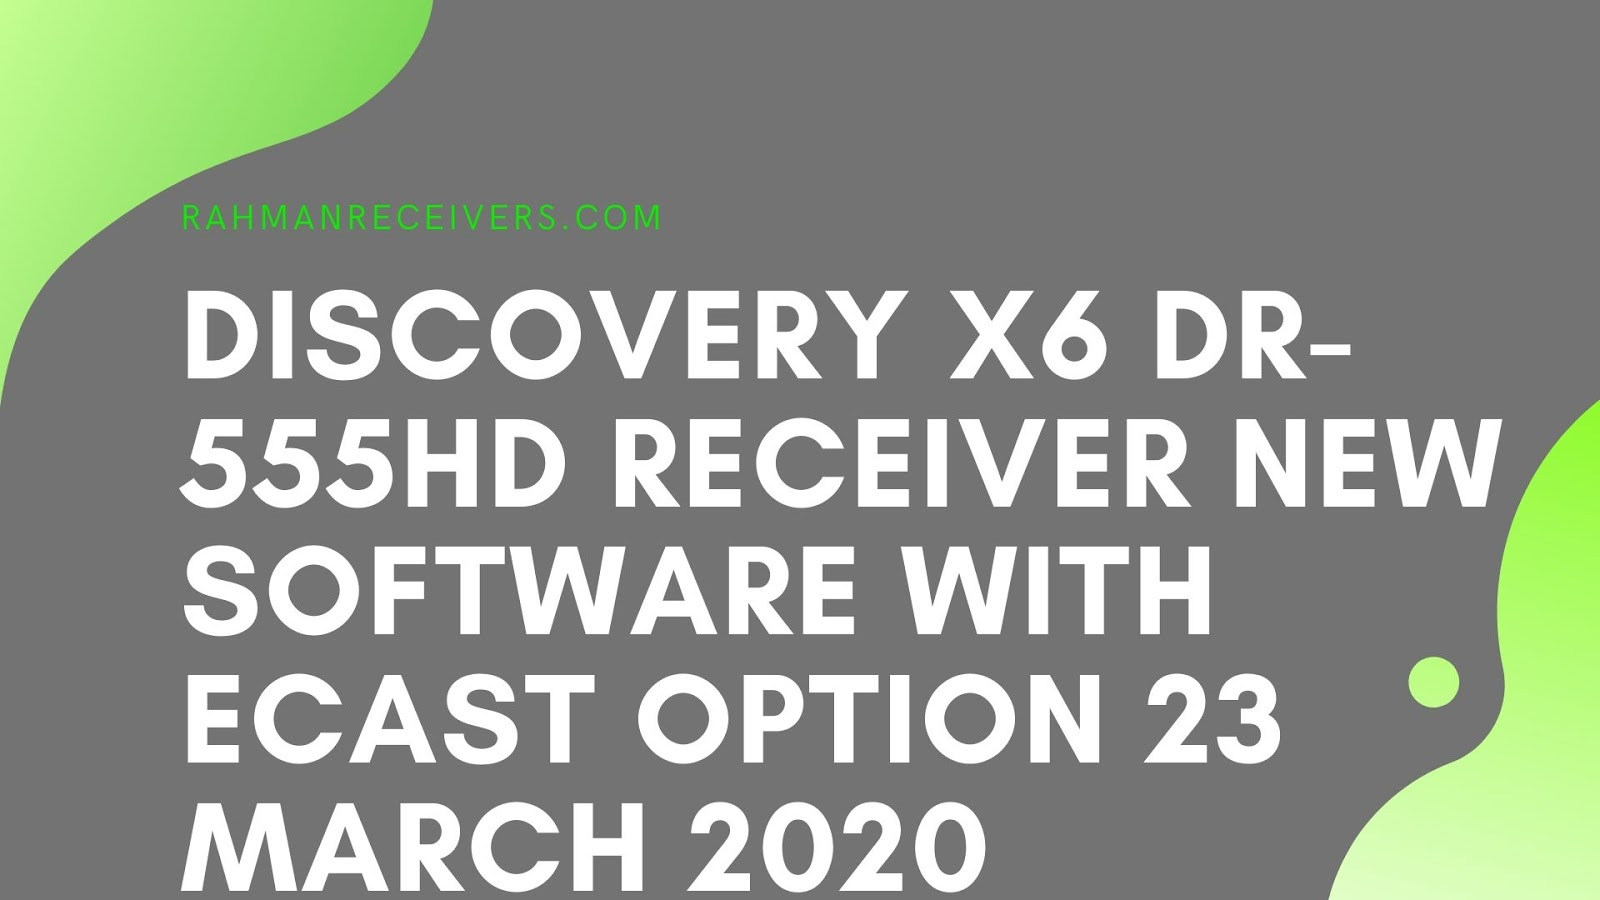 DISCOVERY X6 DR-555HD RECEIVER NEW SOFTWARE WITH ECAST OPTION 23 MARCH 2020